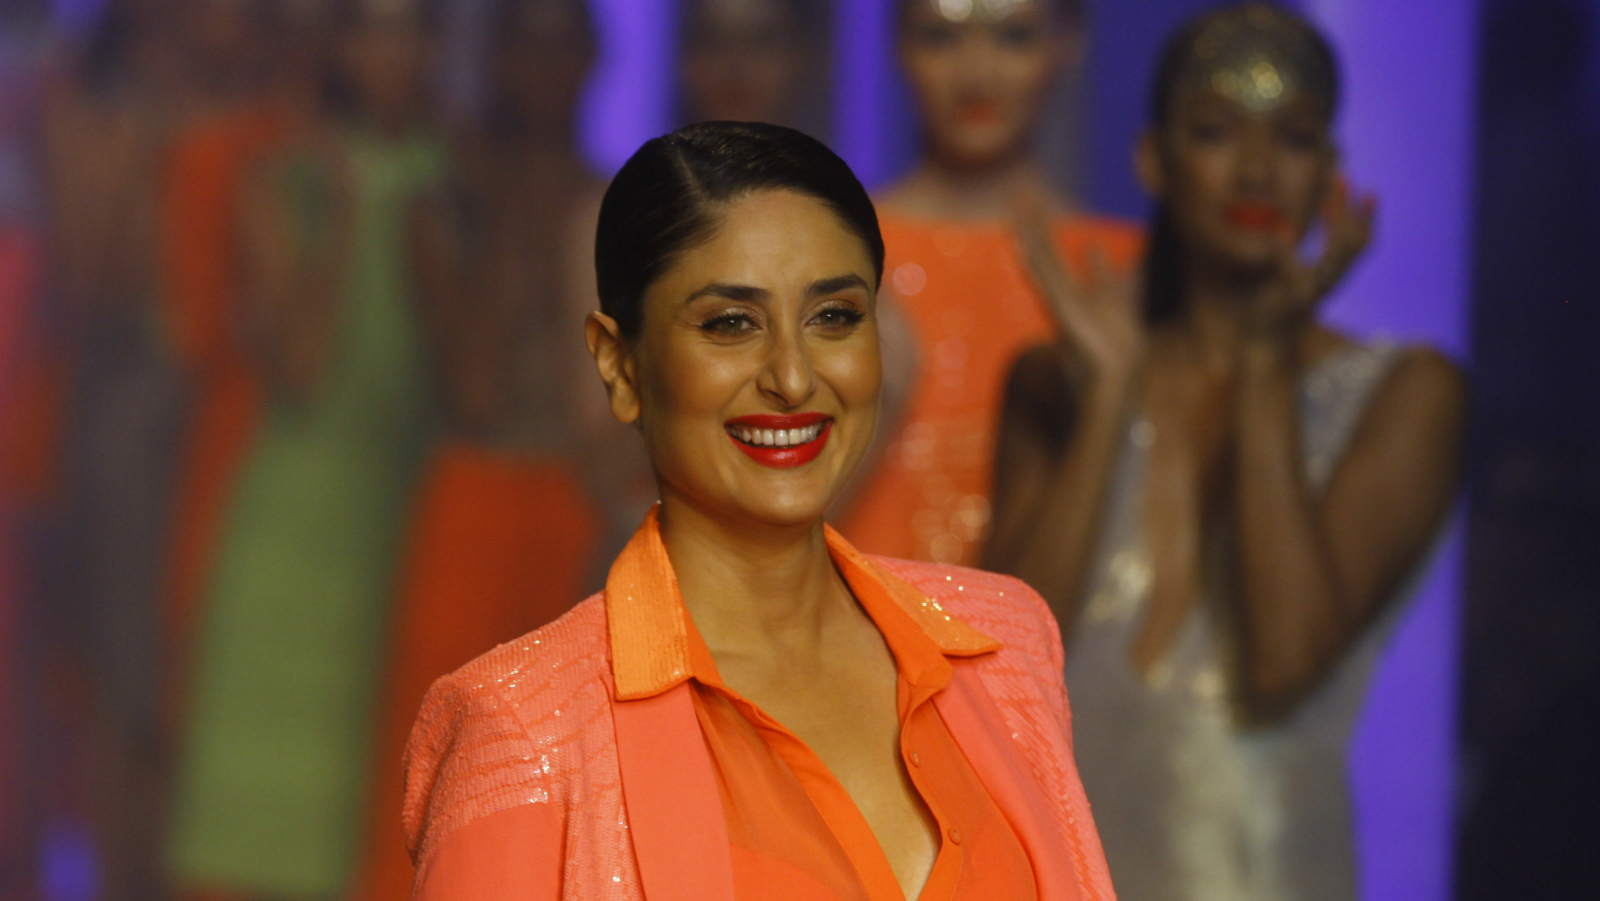 bollywood actresses no longer fear their 30s—or playing mothers